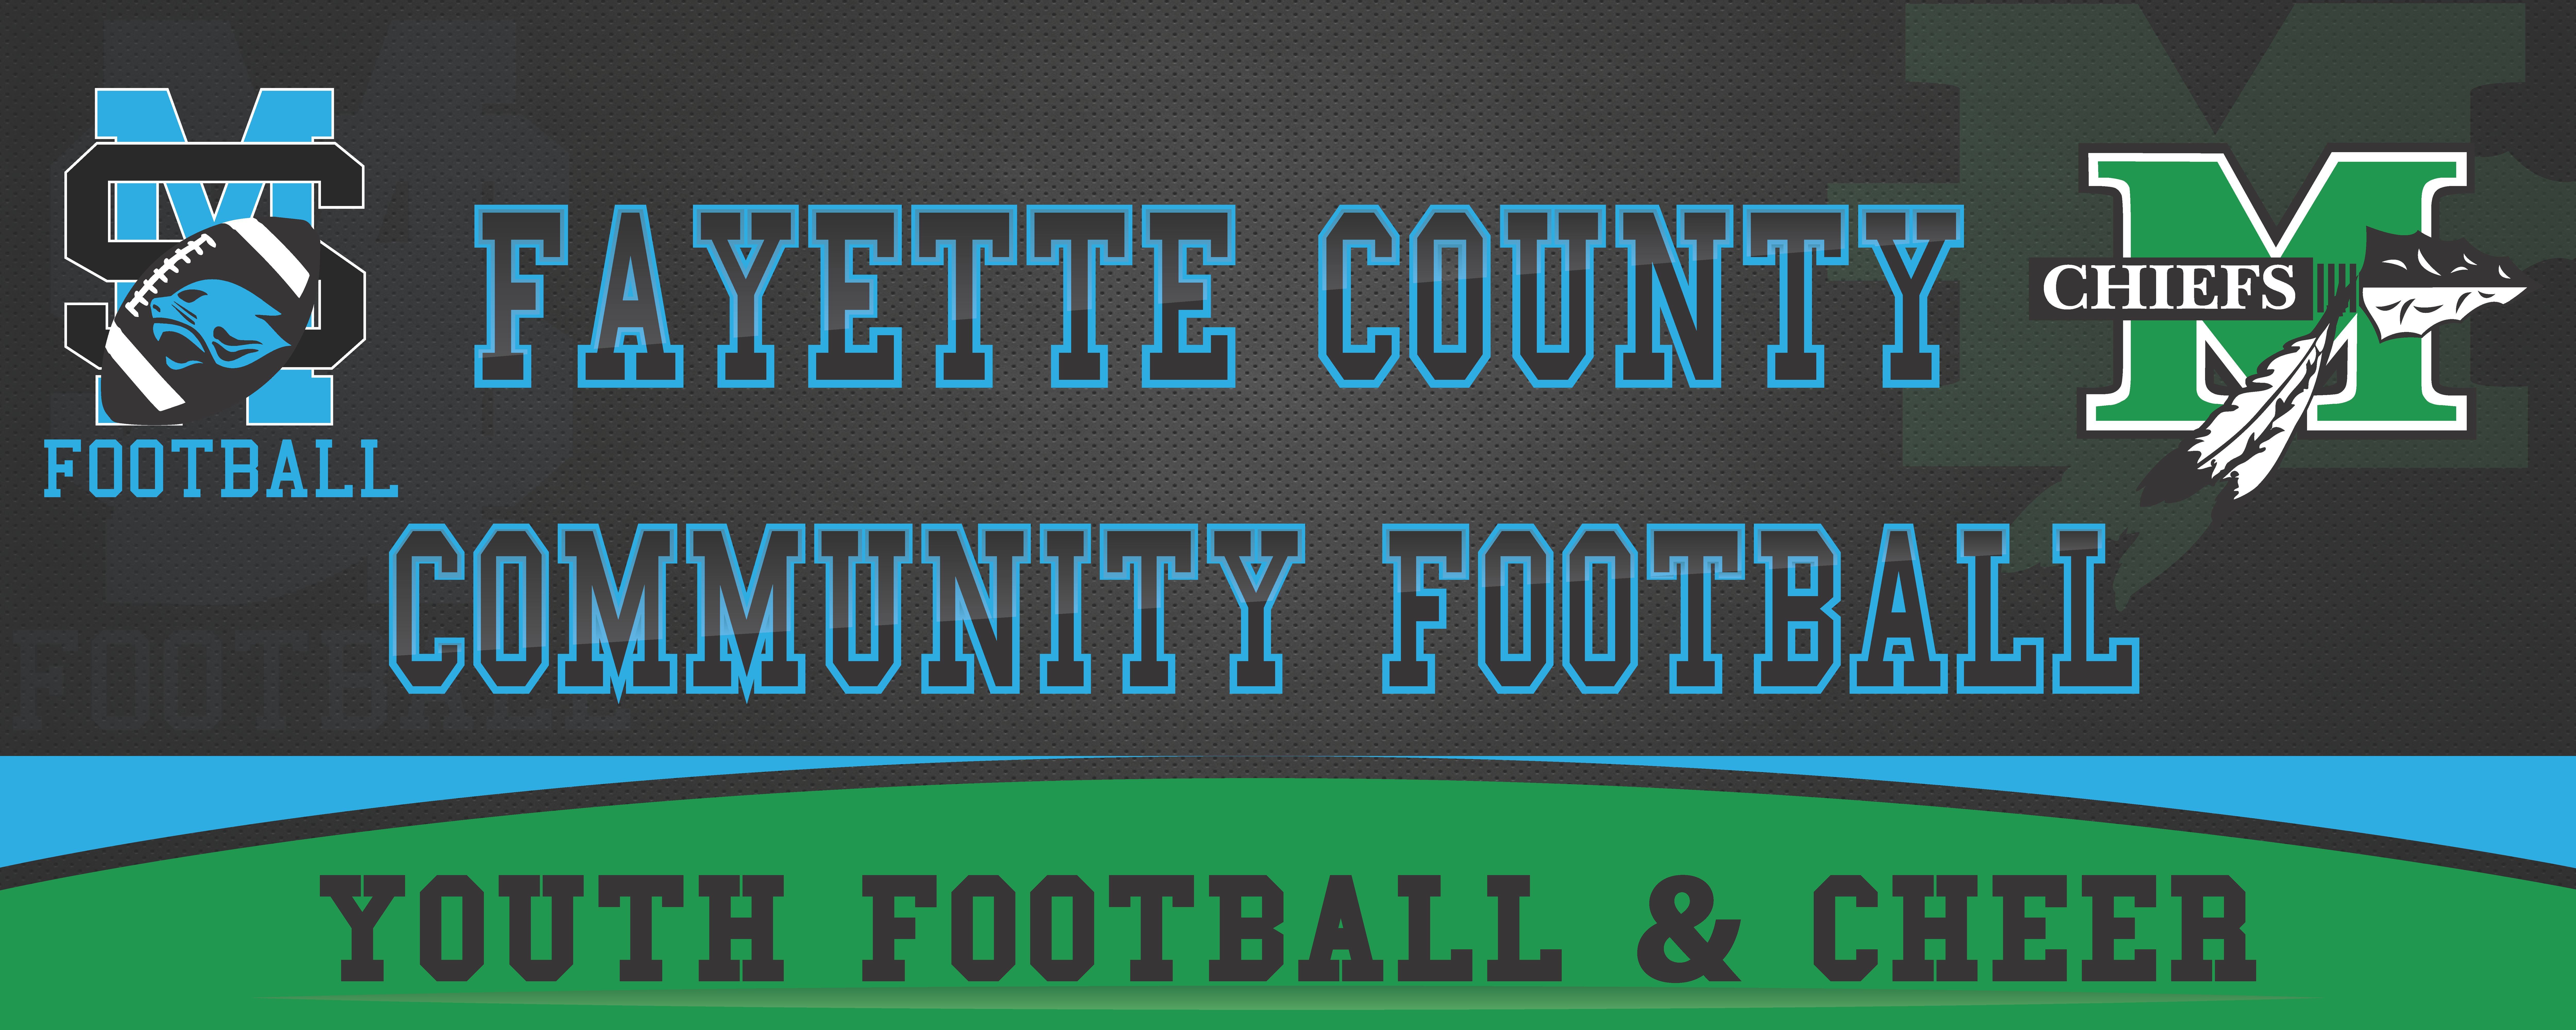 Youth football 5x2 banner proof